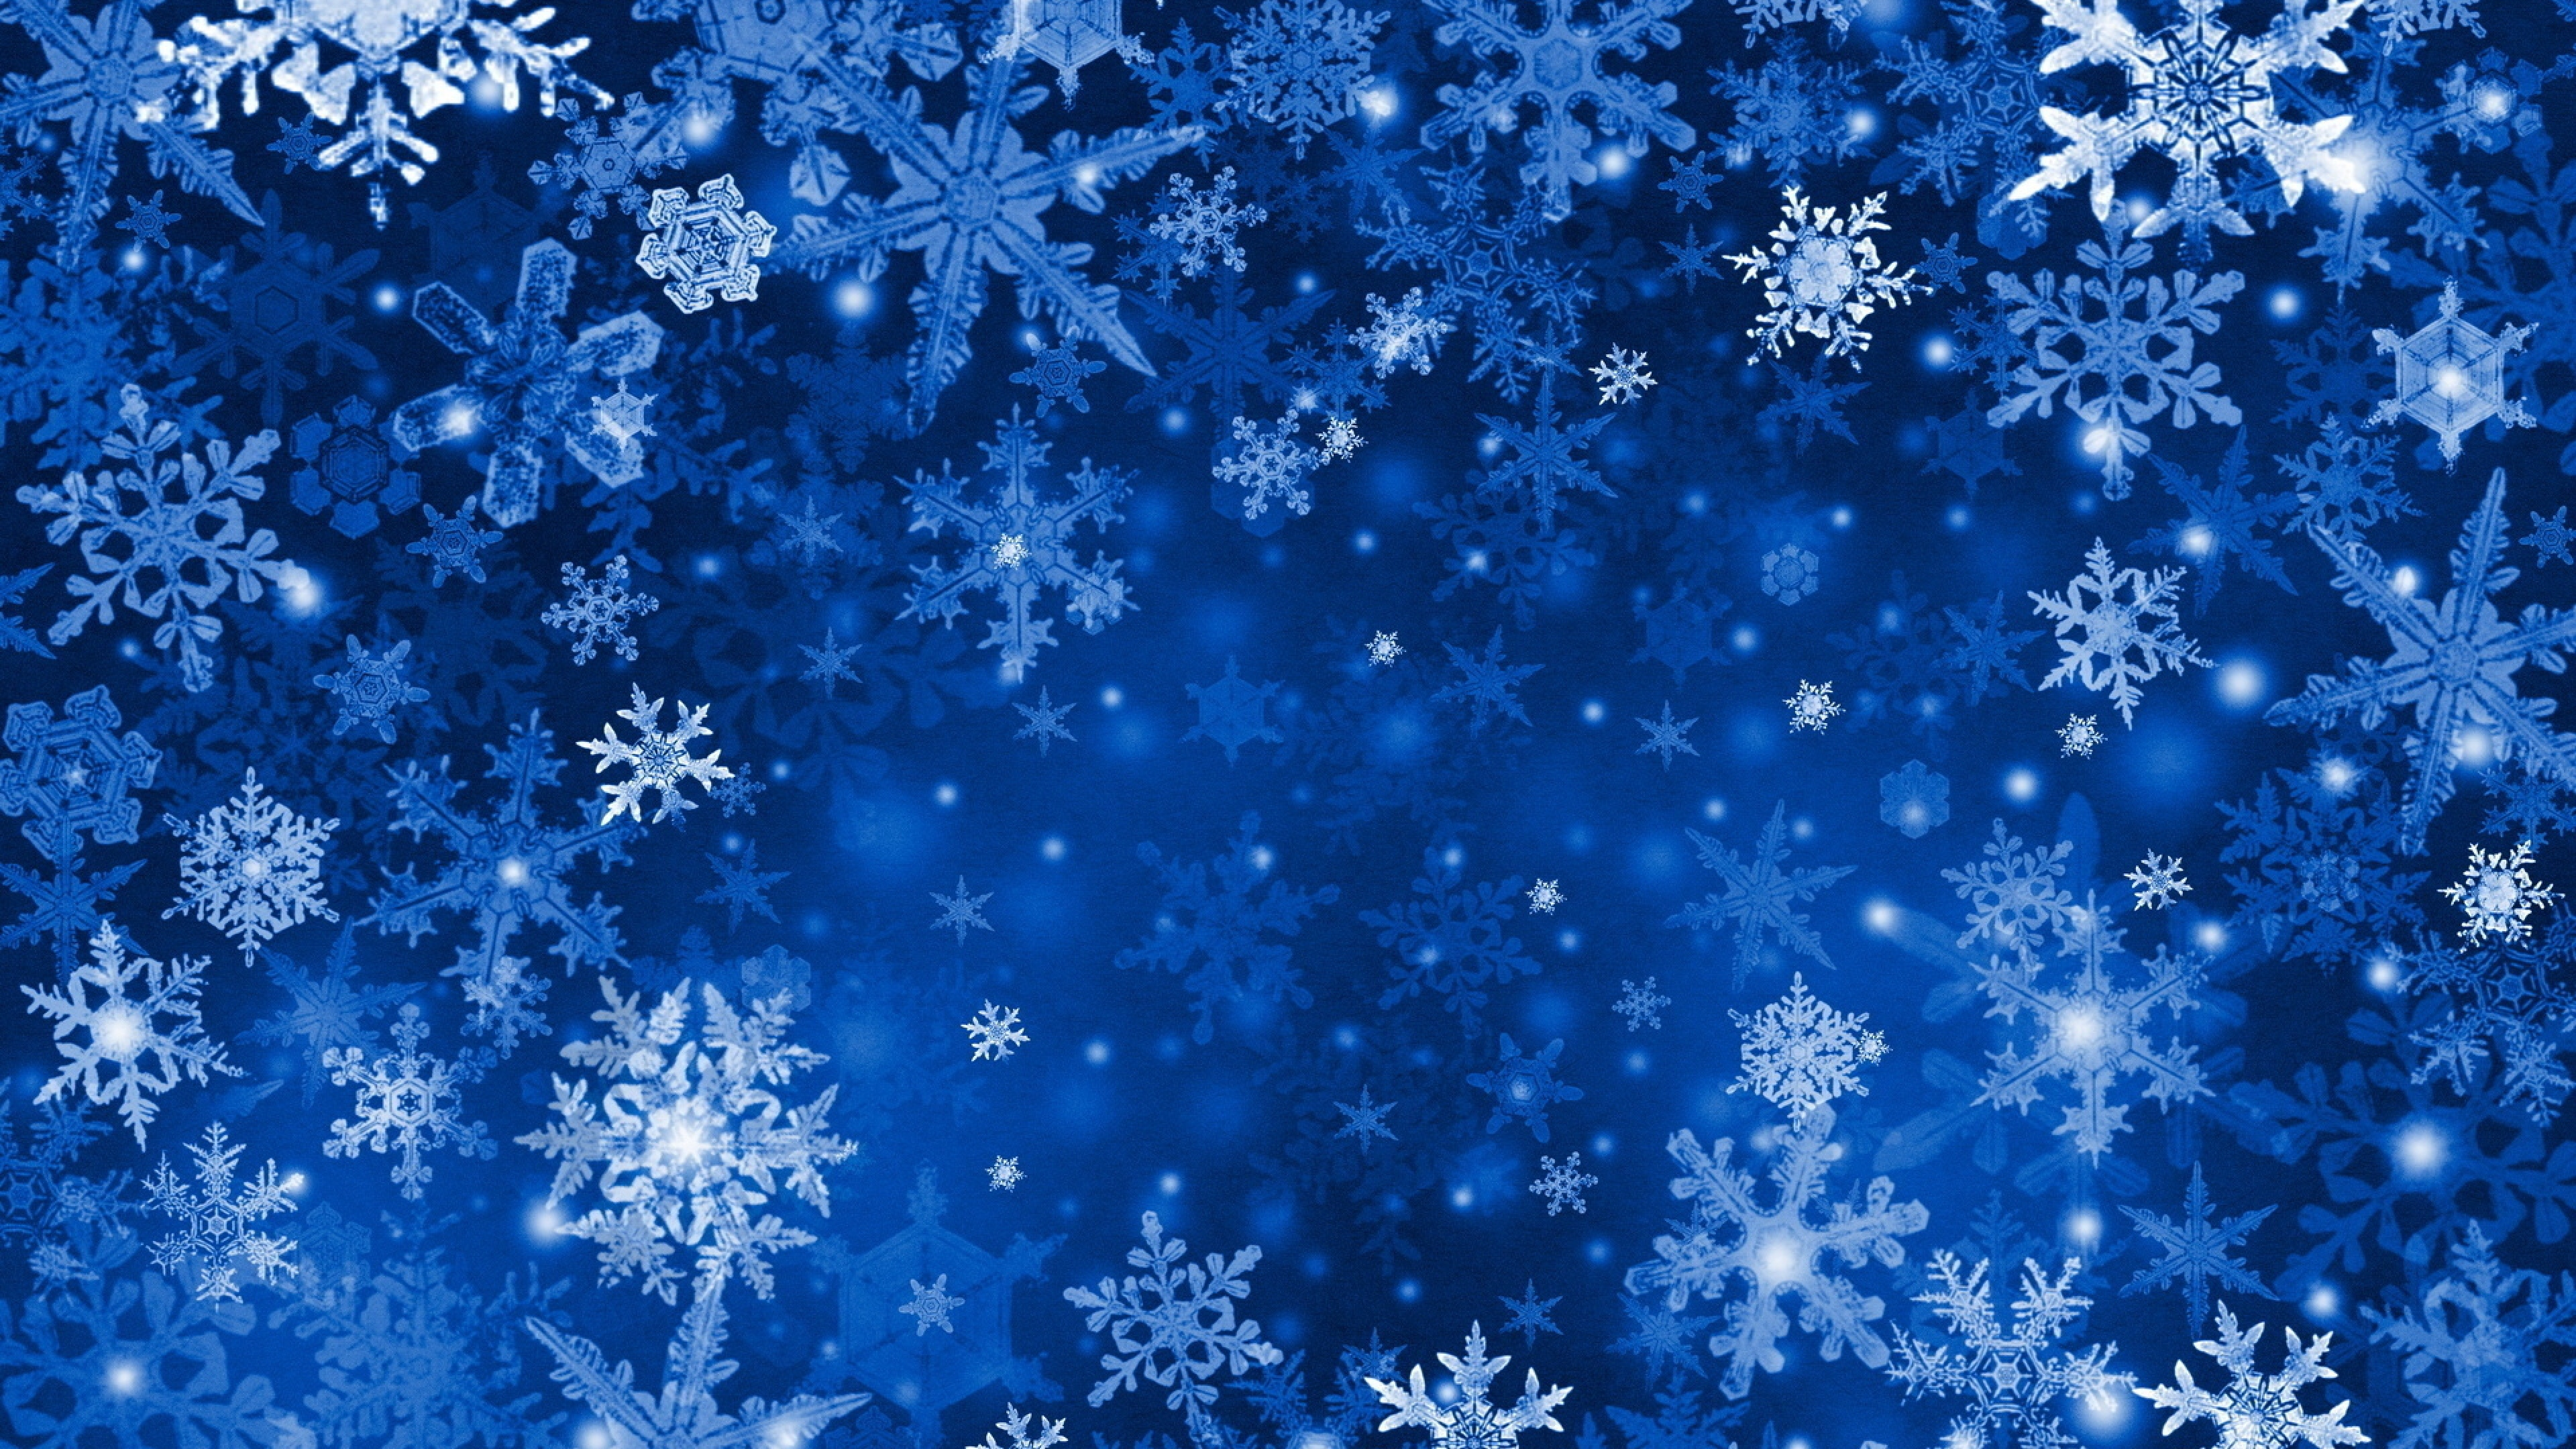 Wallpaper 3840x2160 Snowflakes Background Bright Texture Winter 4K 3840x2160